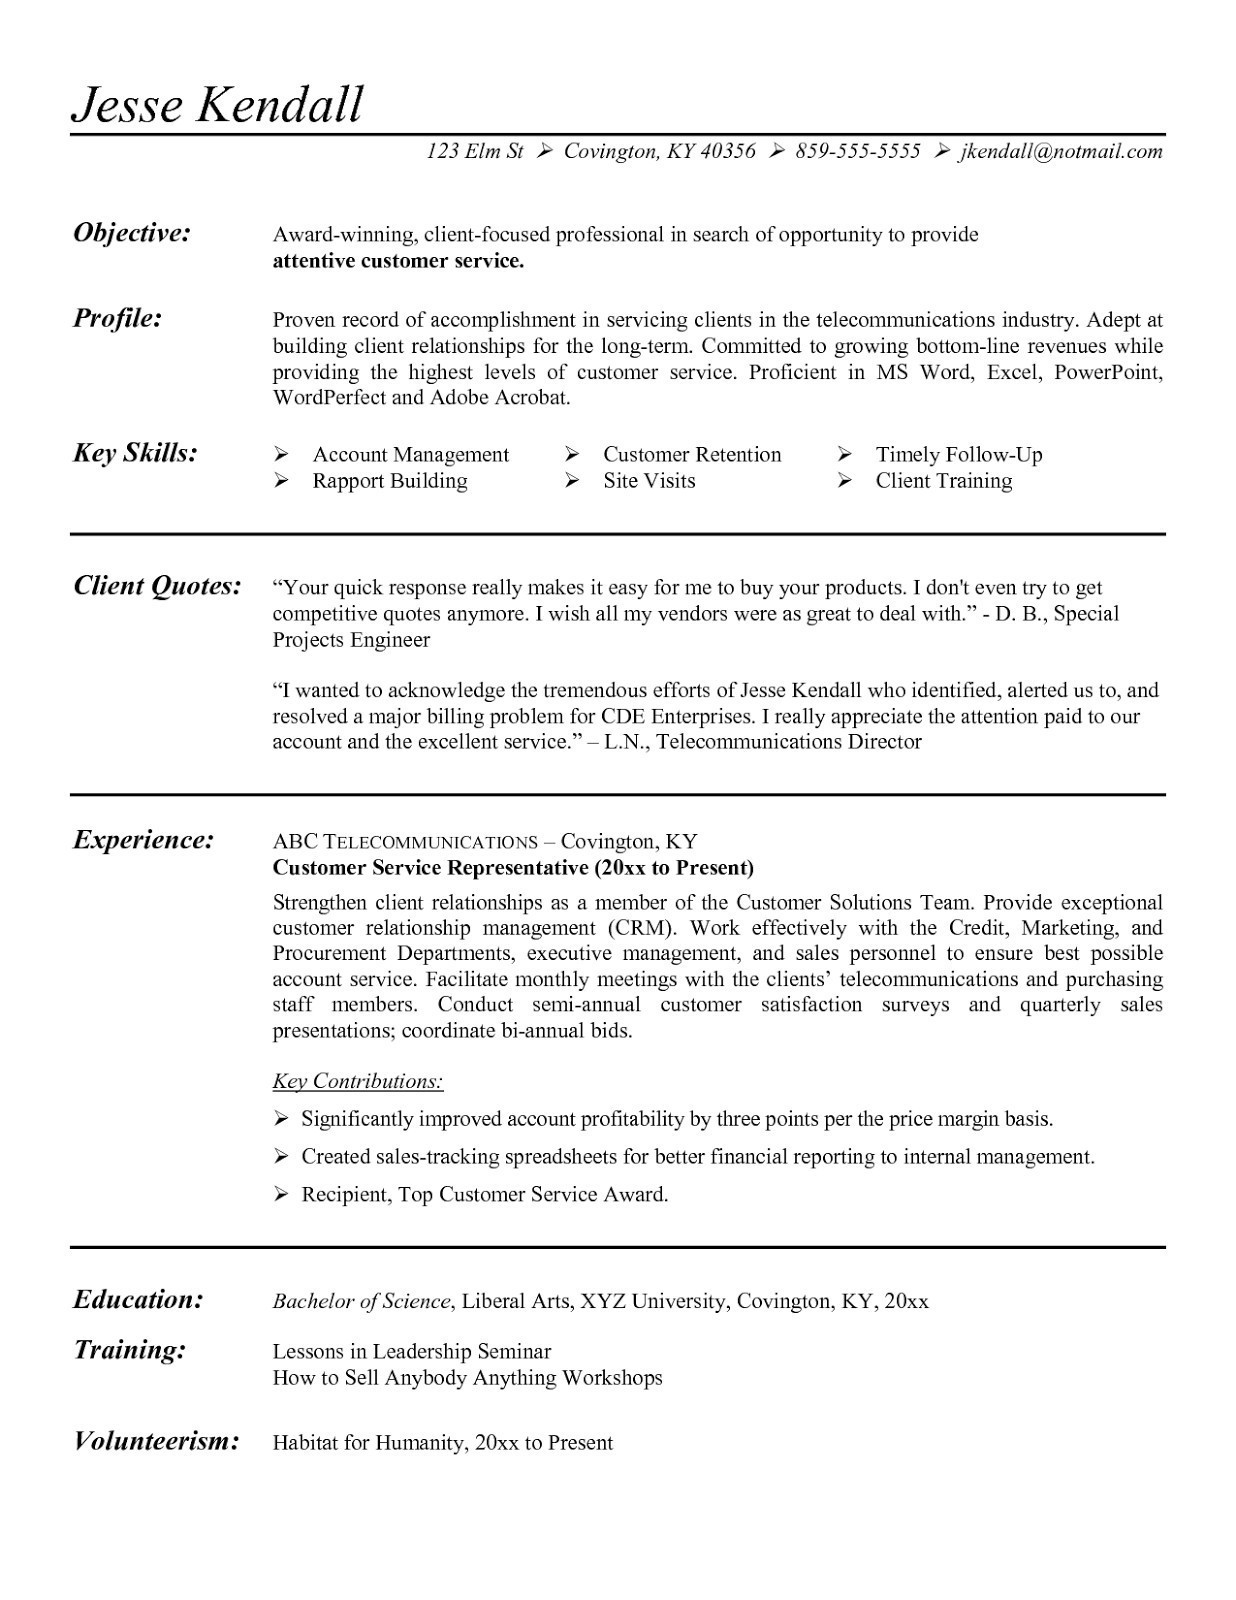 Austin Resume Service - Professional Resume Service Save Professional Resume Services